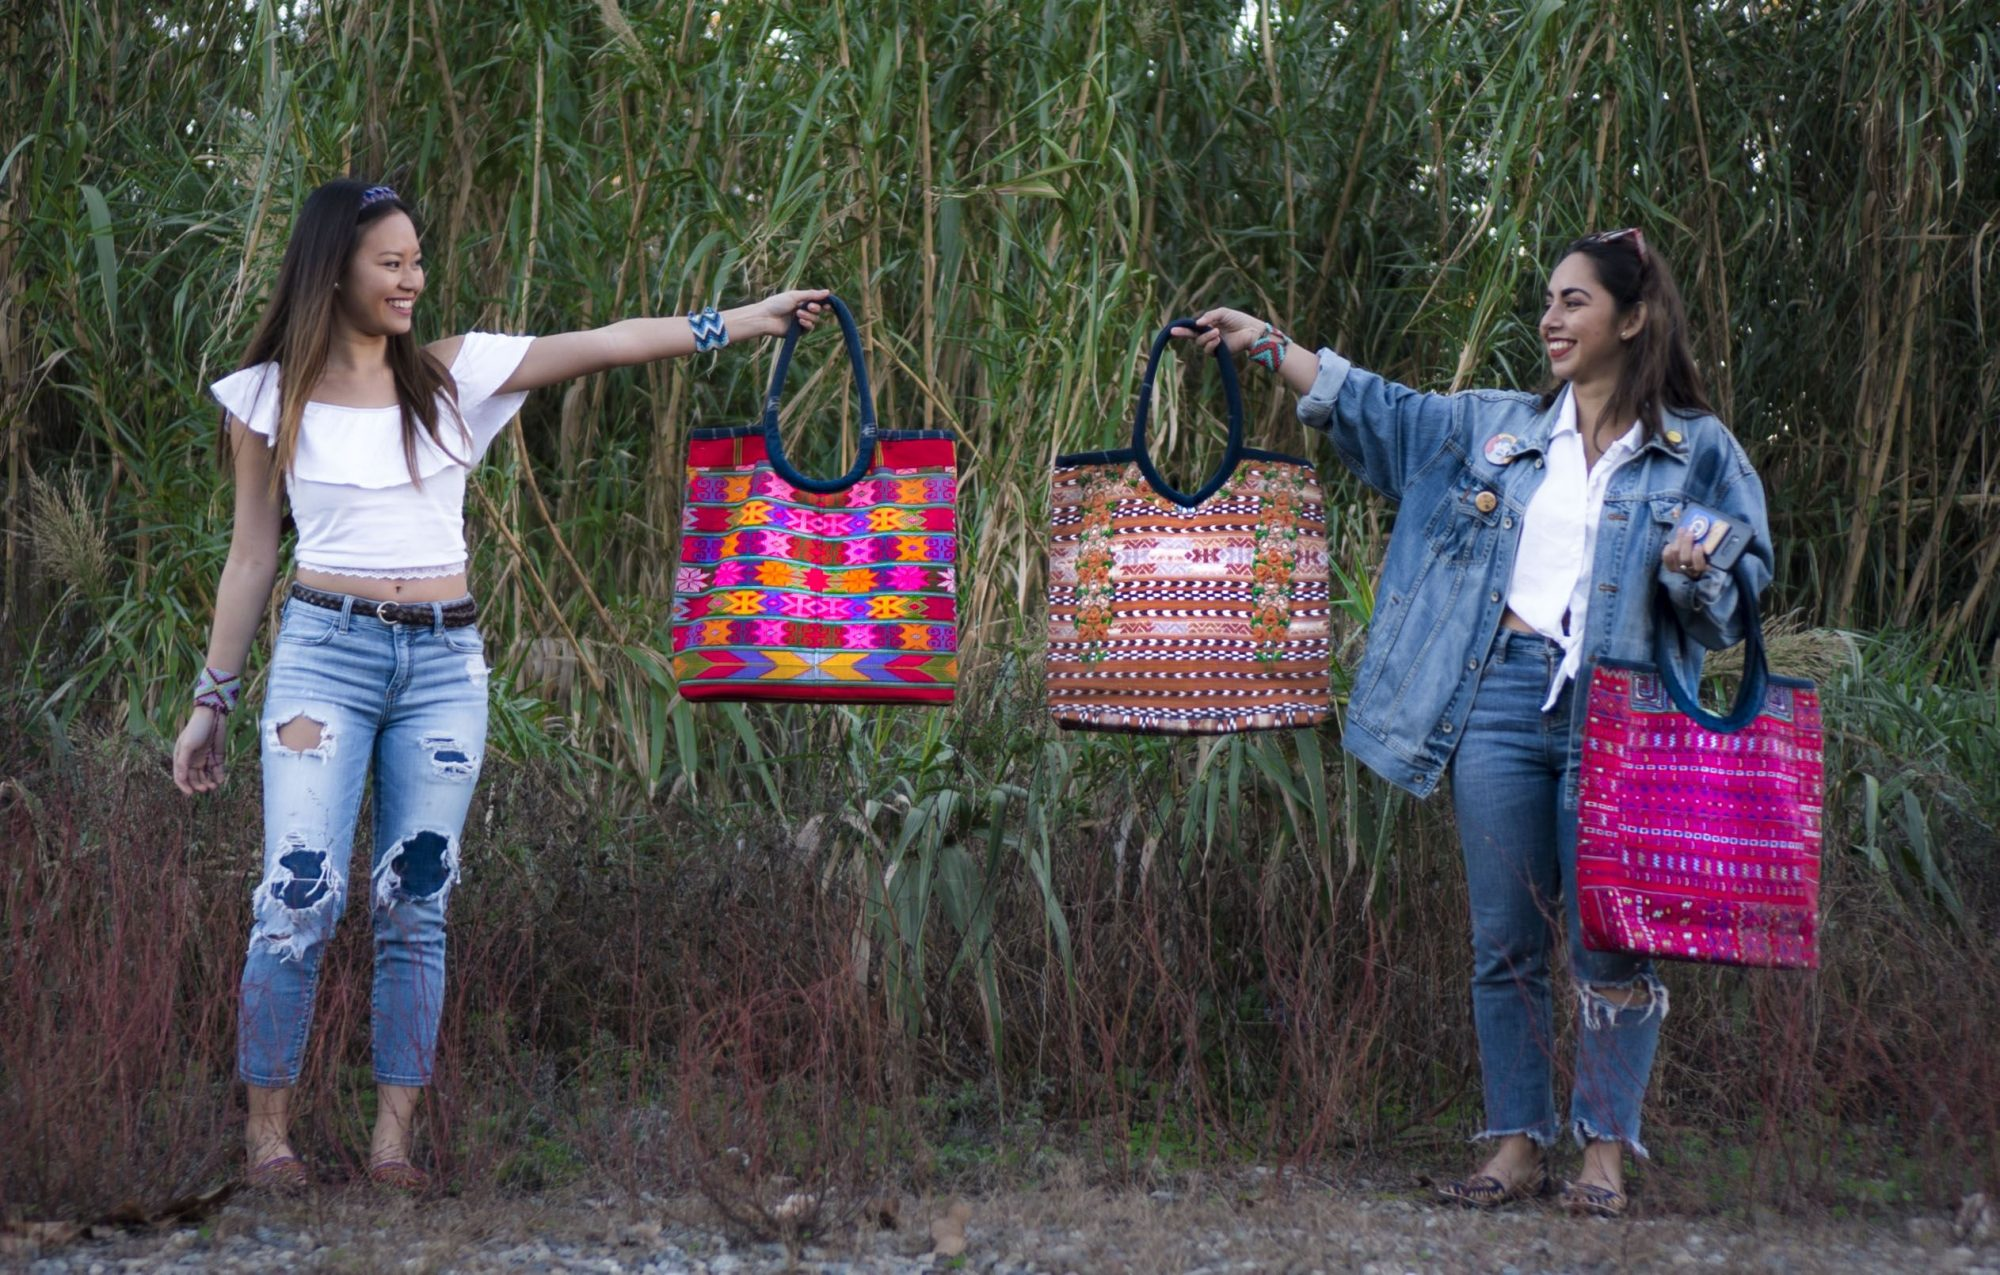 Woven Futures: Preserving Indigenous Cultures Through Artisan Handicraft